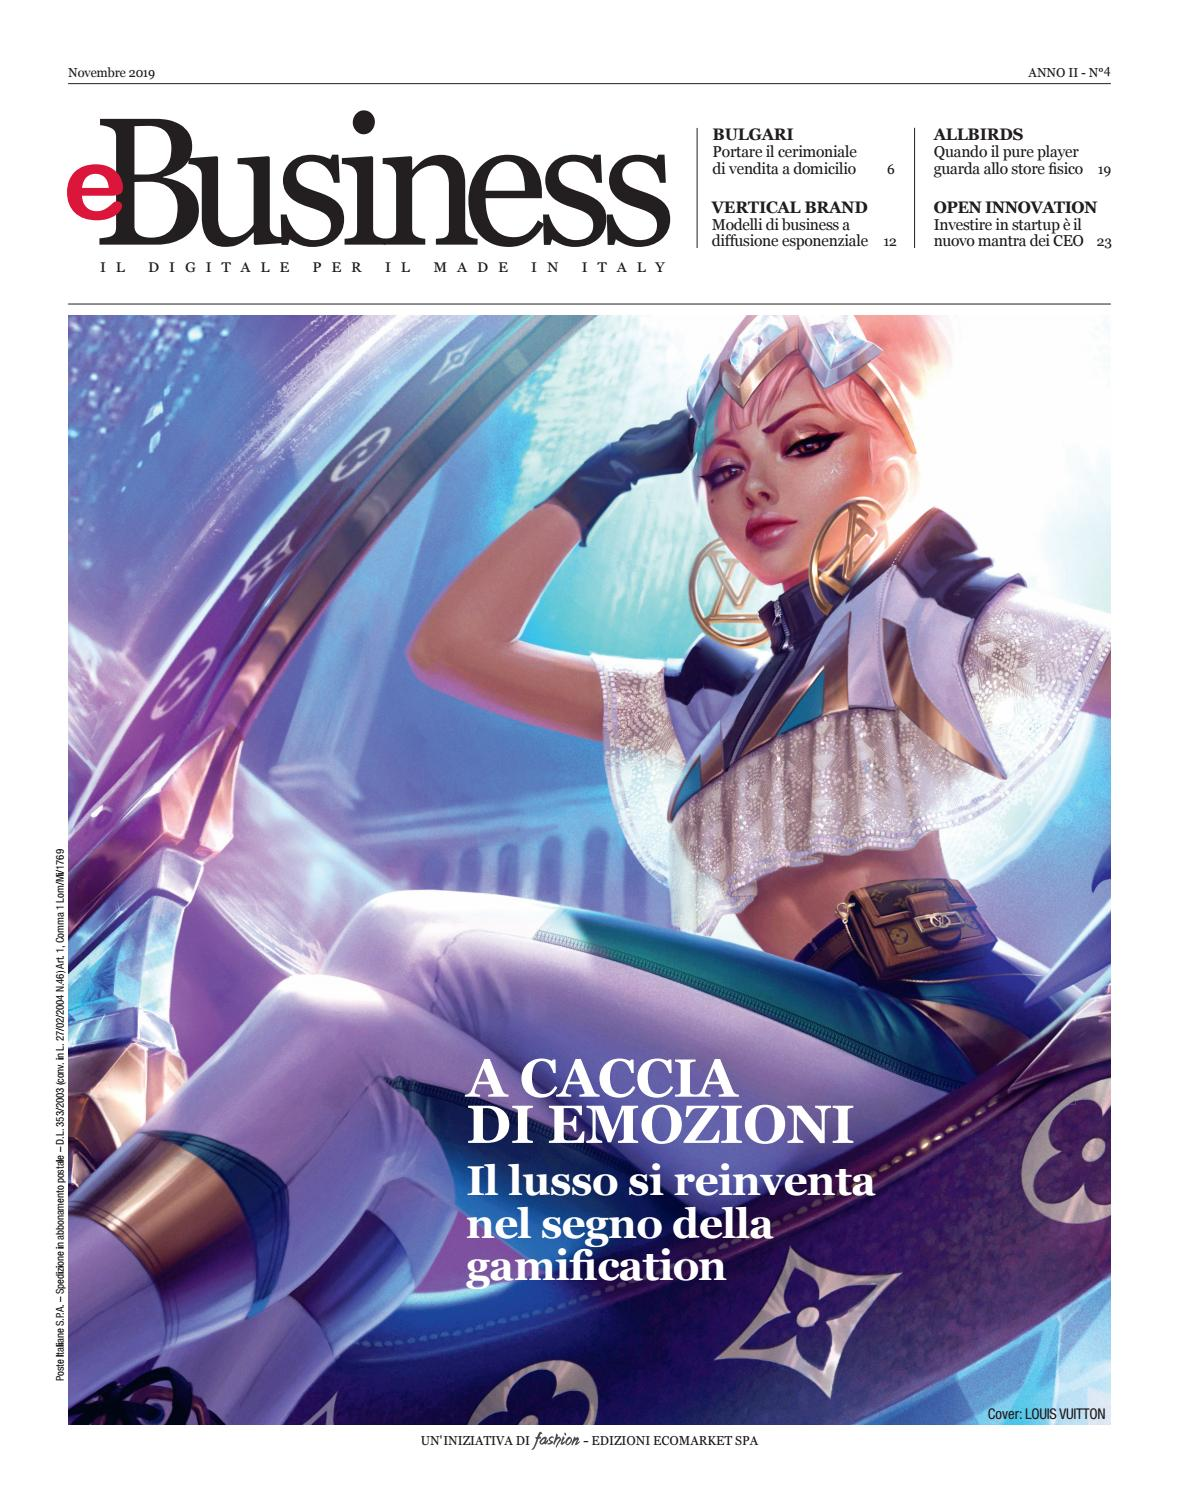 eBusiness N 4 2019 by Fashionmagazine issuu